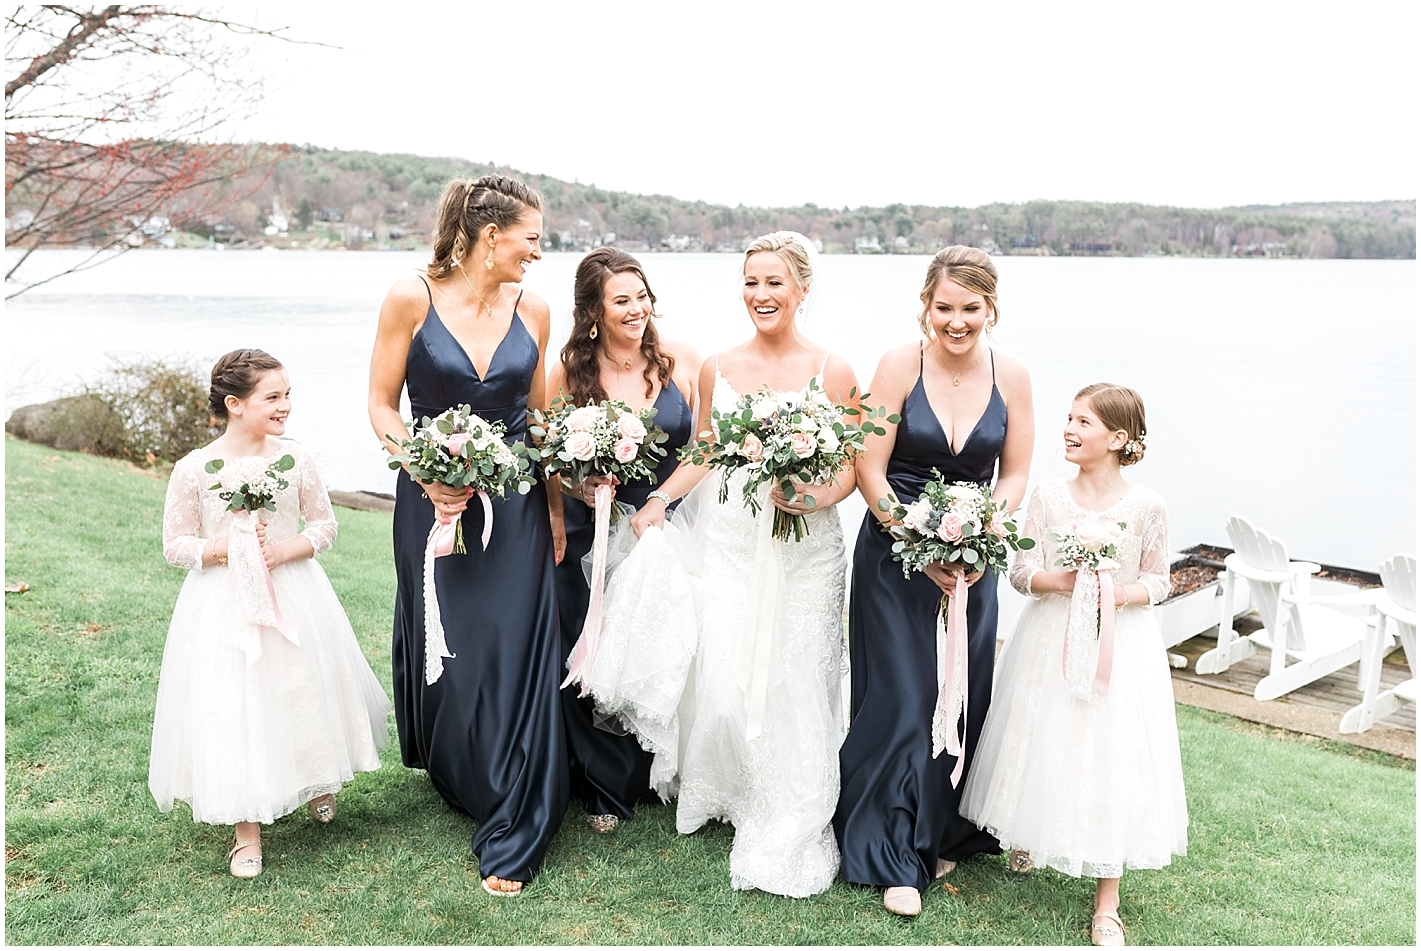 Blush Green and Navy Wedding Bouquets Photos by Alyssa Parker Photography